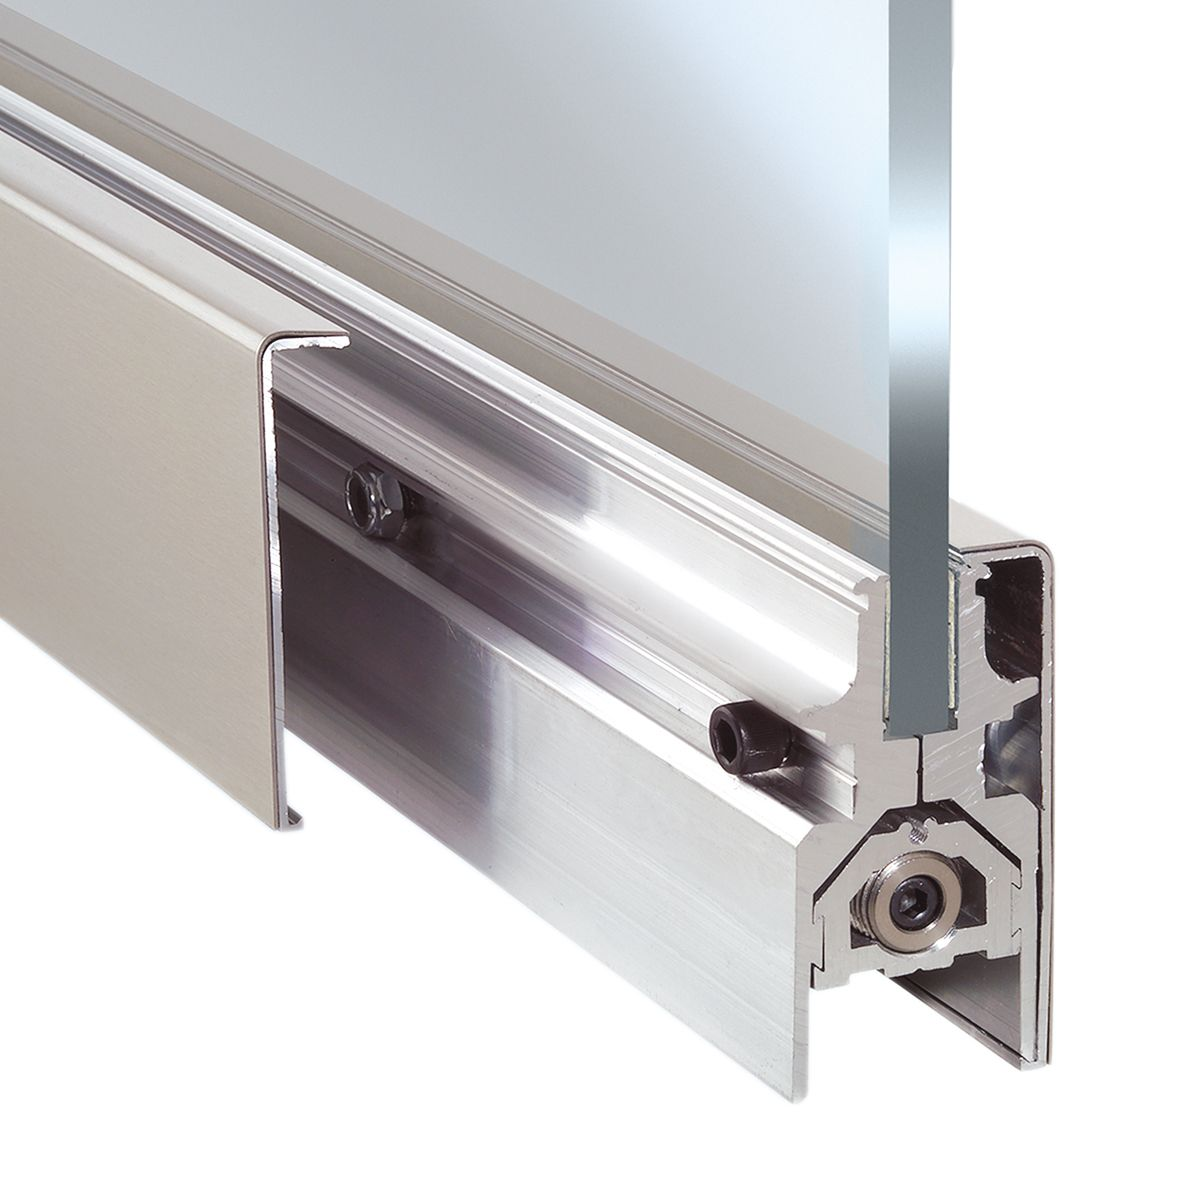 Ceilingmountedslidingroomdivider opening closing innovative design quality materials and the finest workmanship allow dorma rails and header systems to meet the most demanding conditions vtopaller Image collections